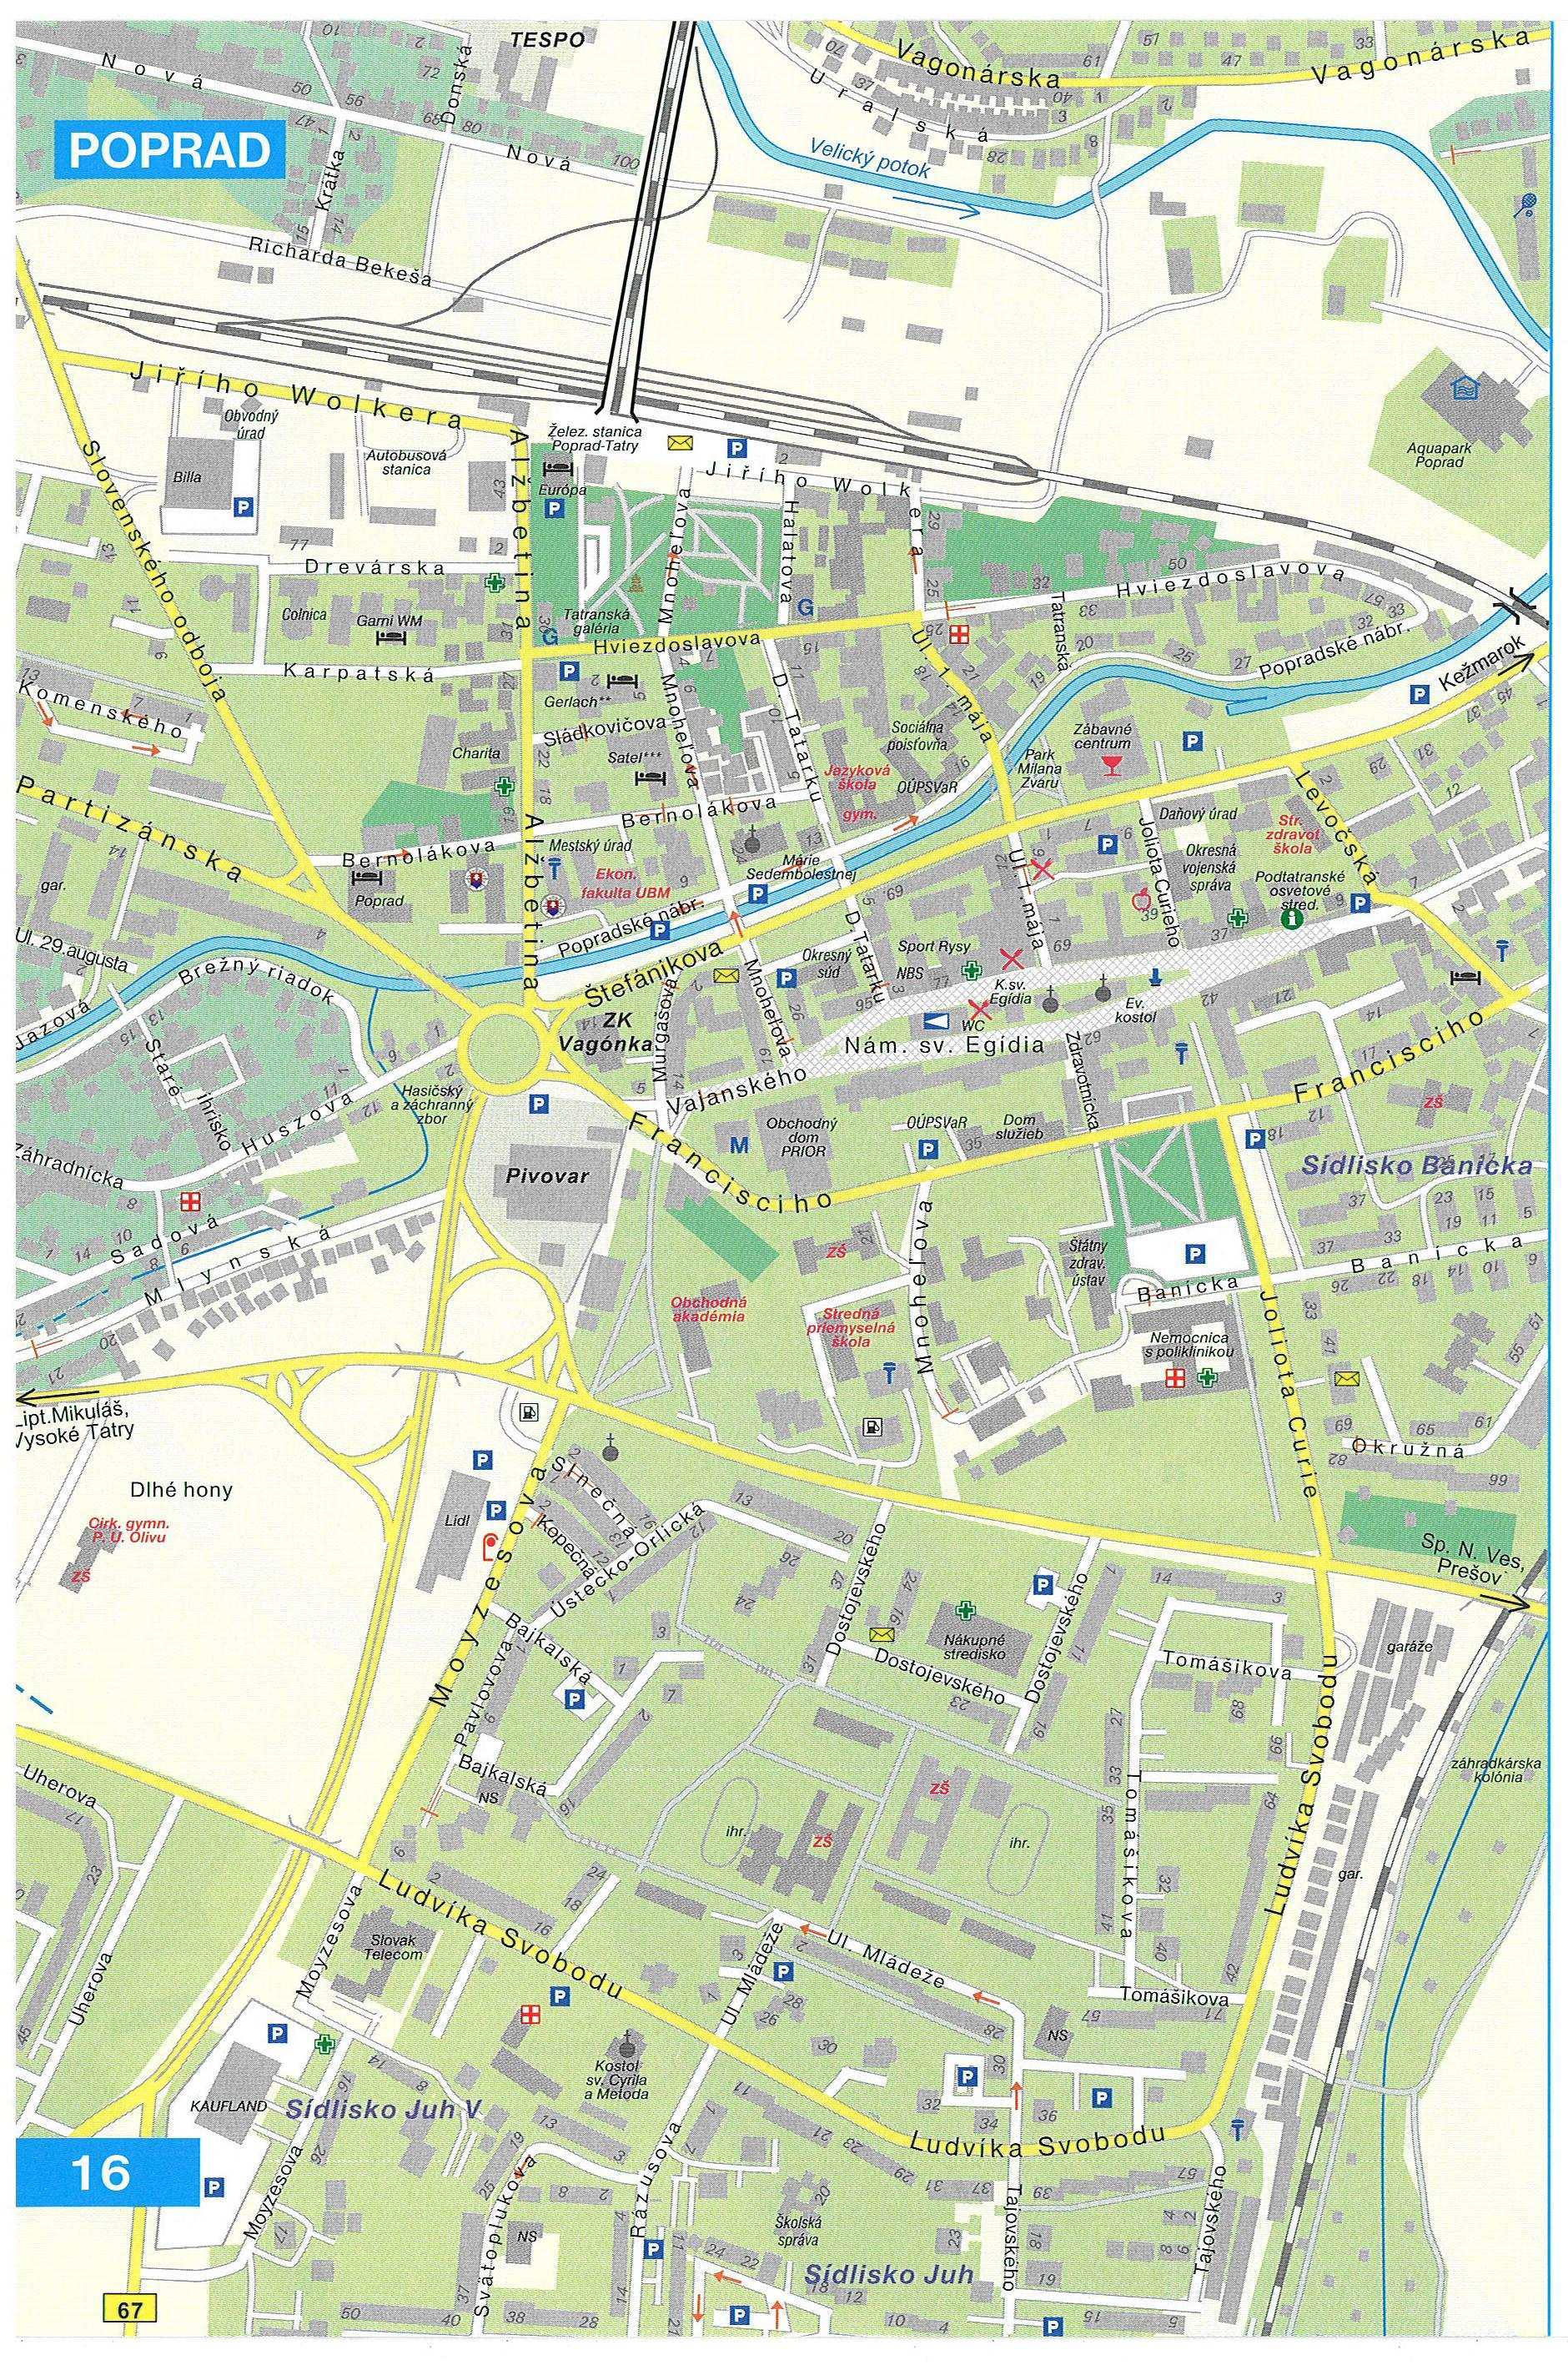 Large Poprad Maps For Free Download And Print High